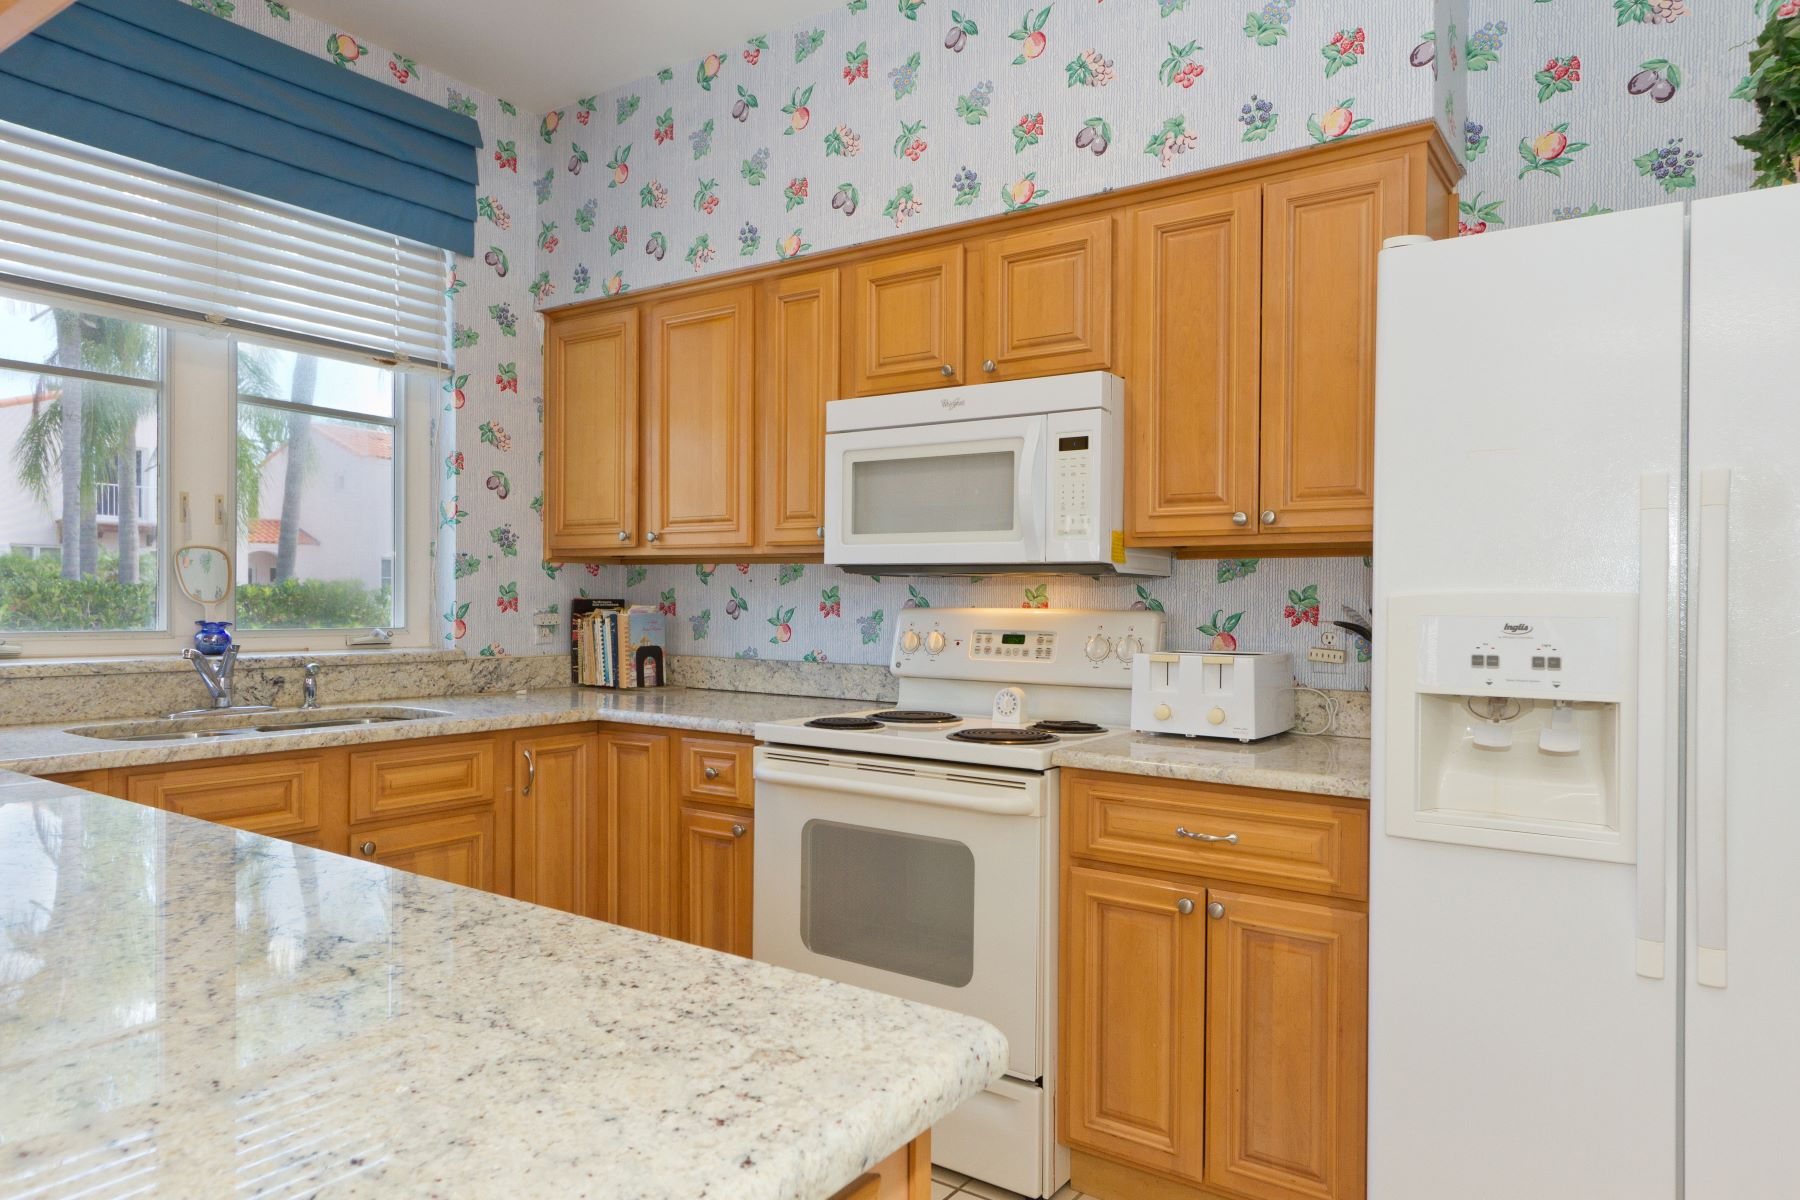 Additional photo for property listing at 4926 Wood Duck Circle Vero Beach, Florida 32967 United States